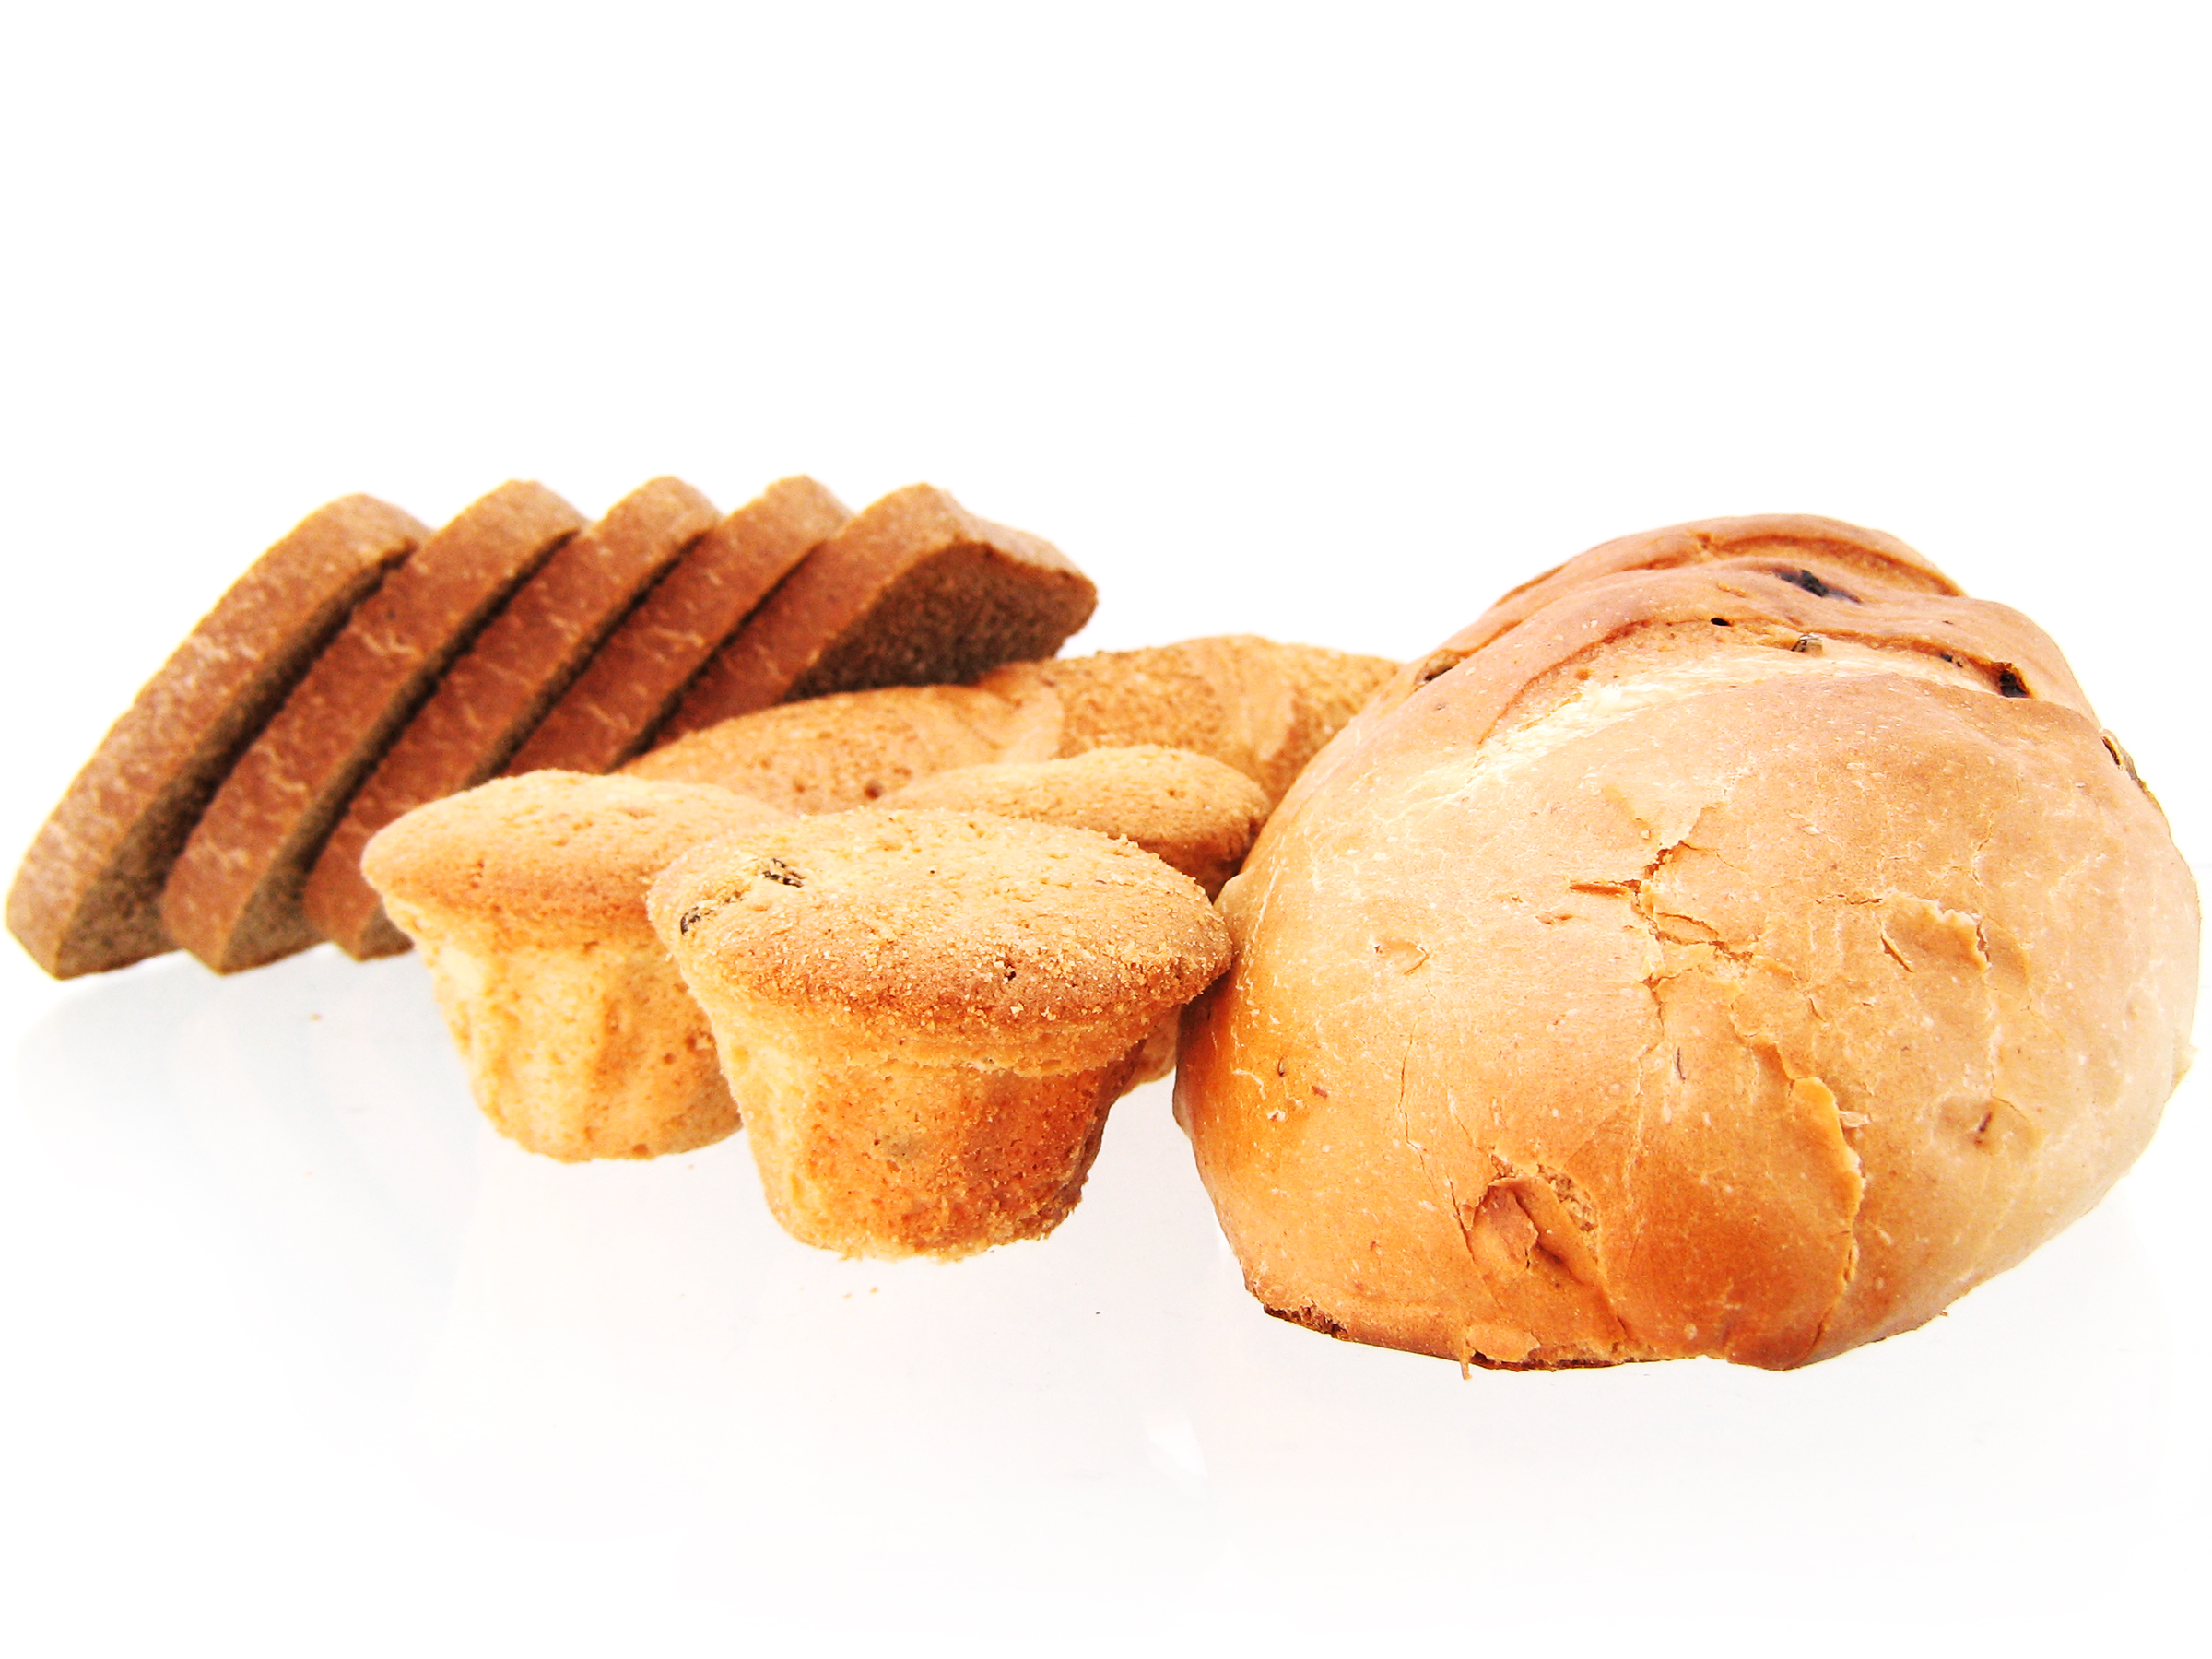 Bread and buns photo